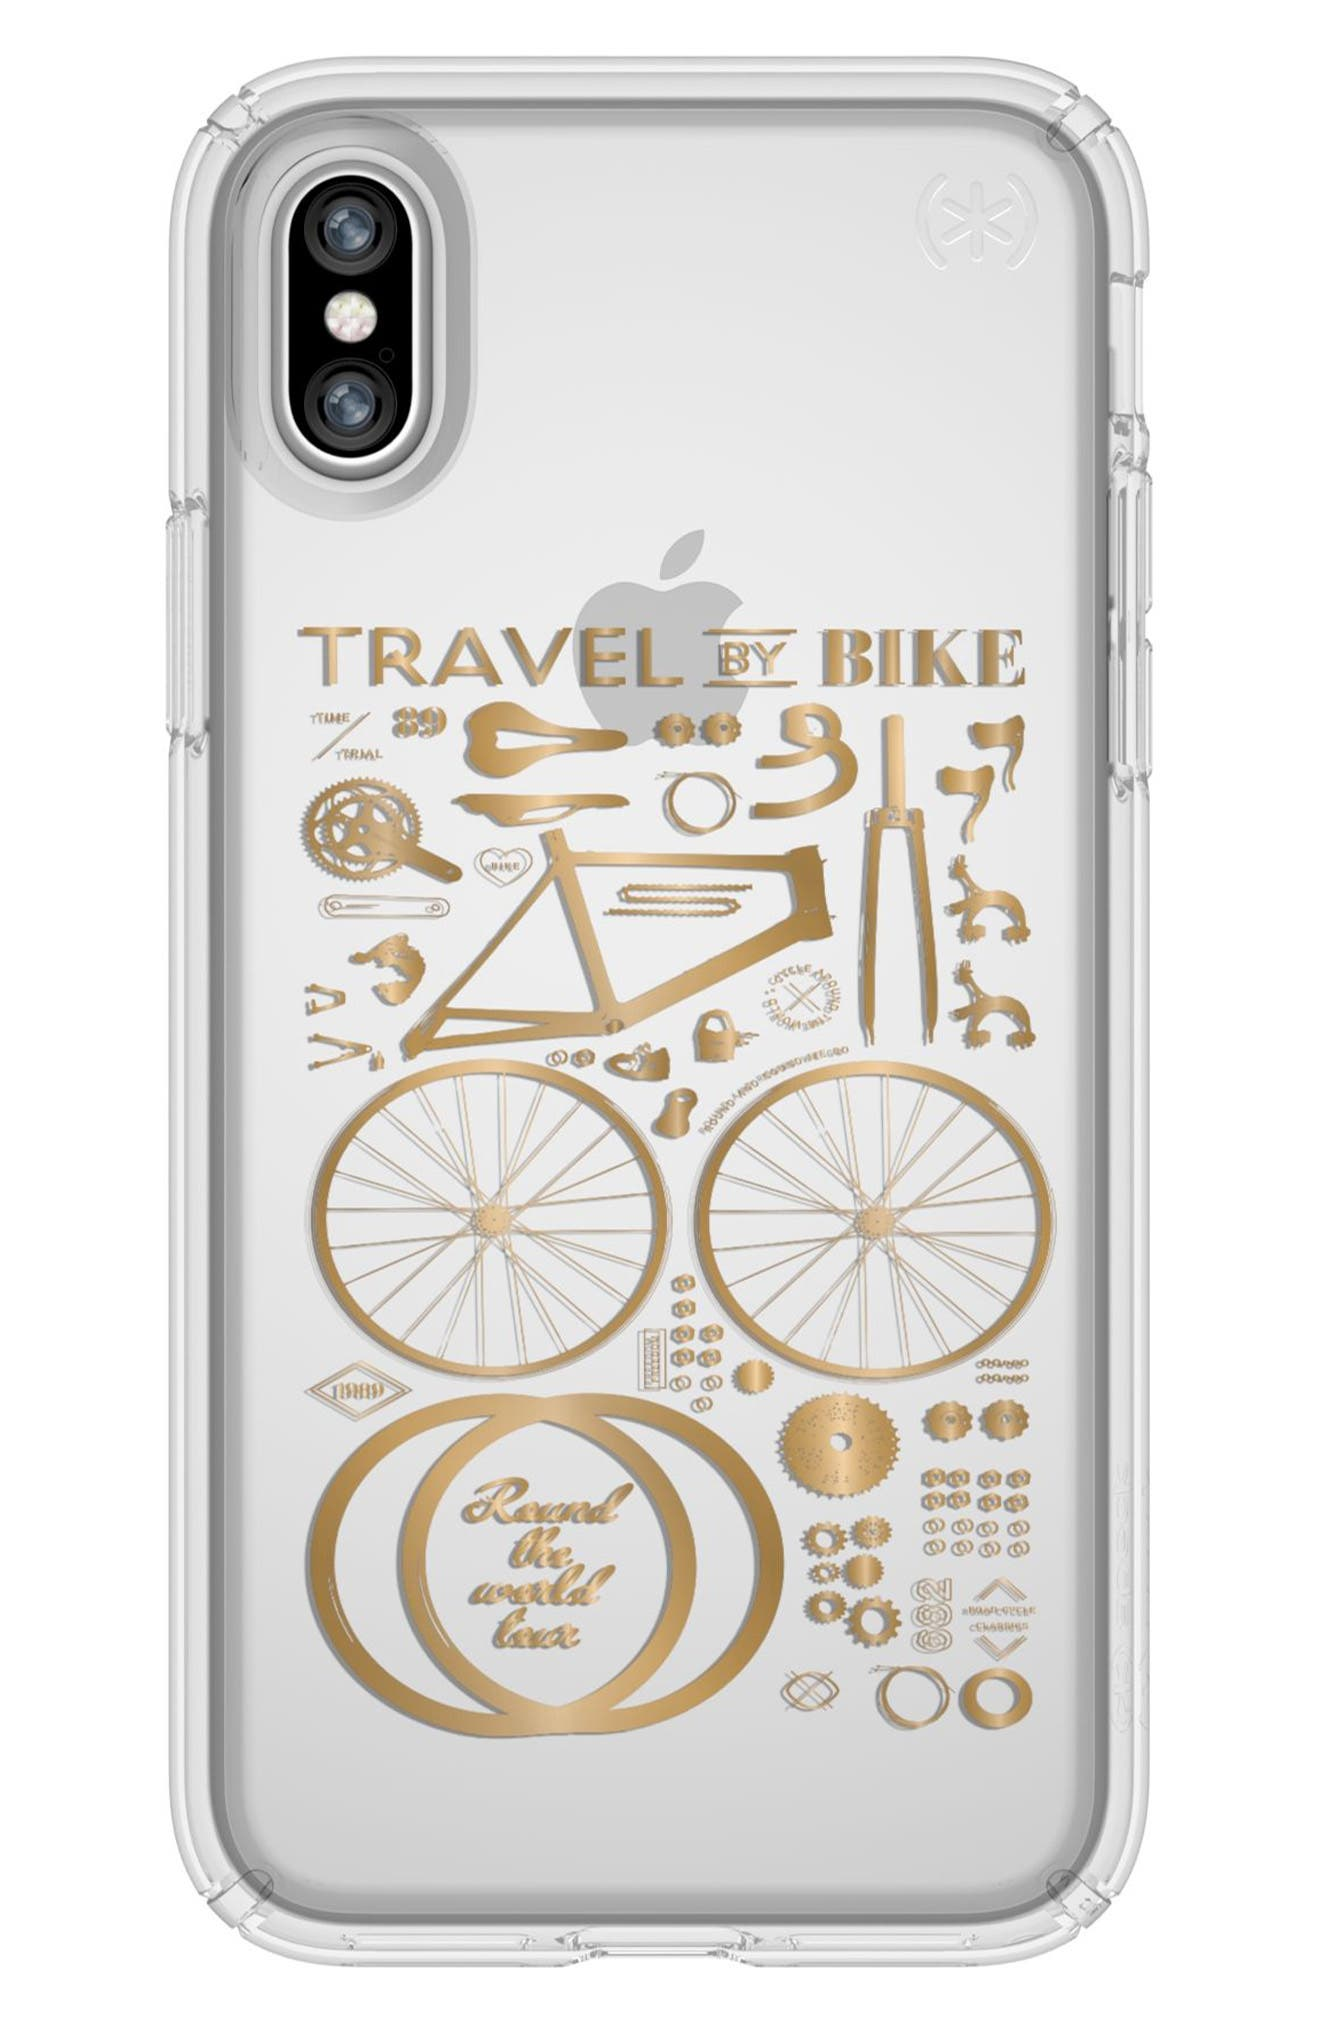 Metallic City Bike Transparent iPhone X Case,                             Main thumbnail 1, color,                             City Bike Metallic Gold/ Clear